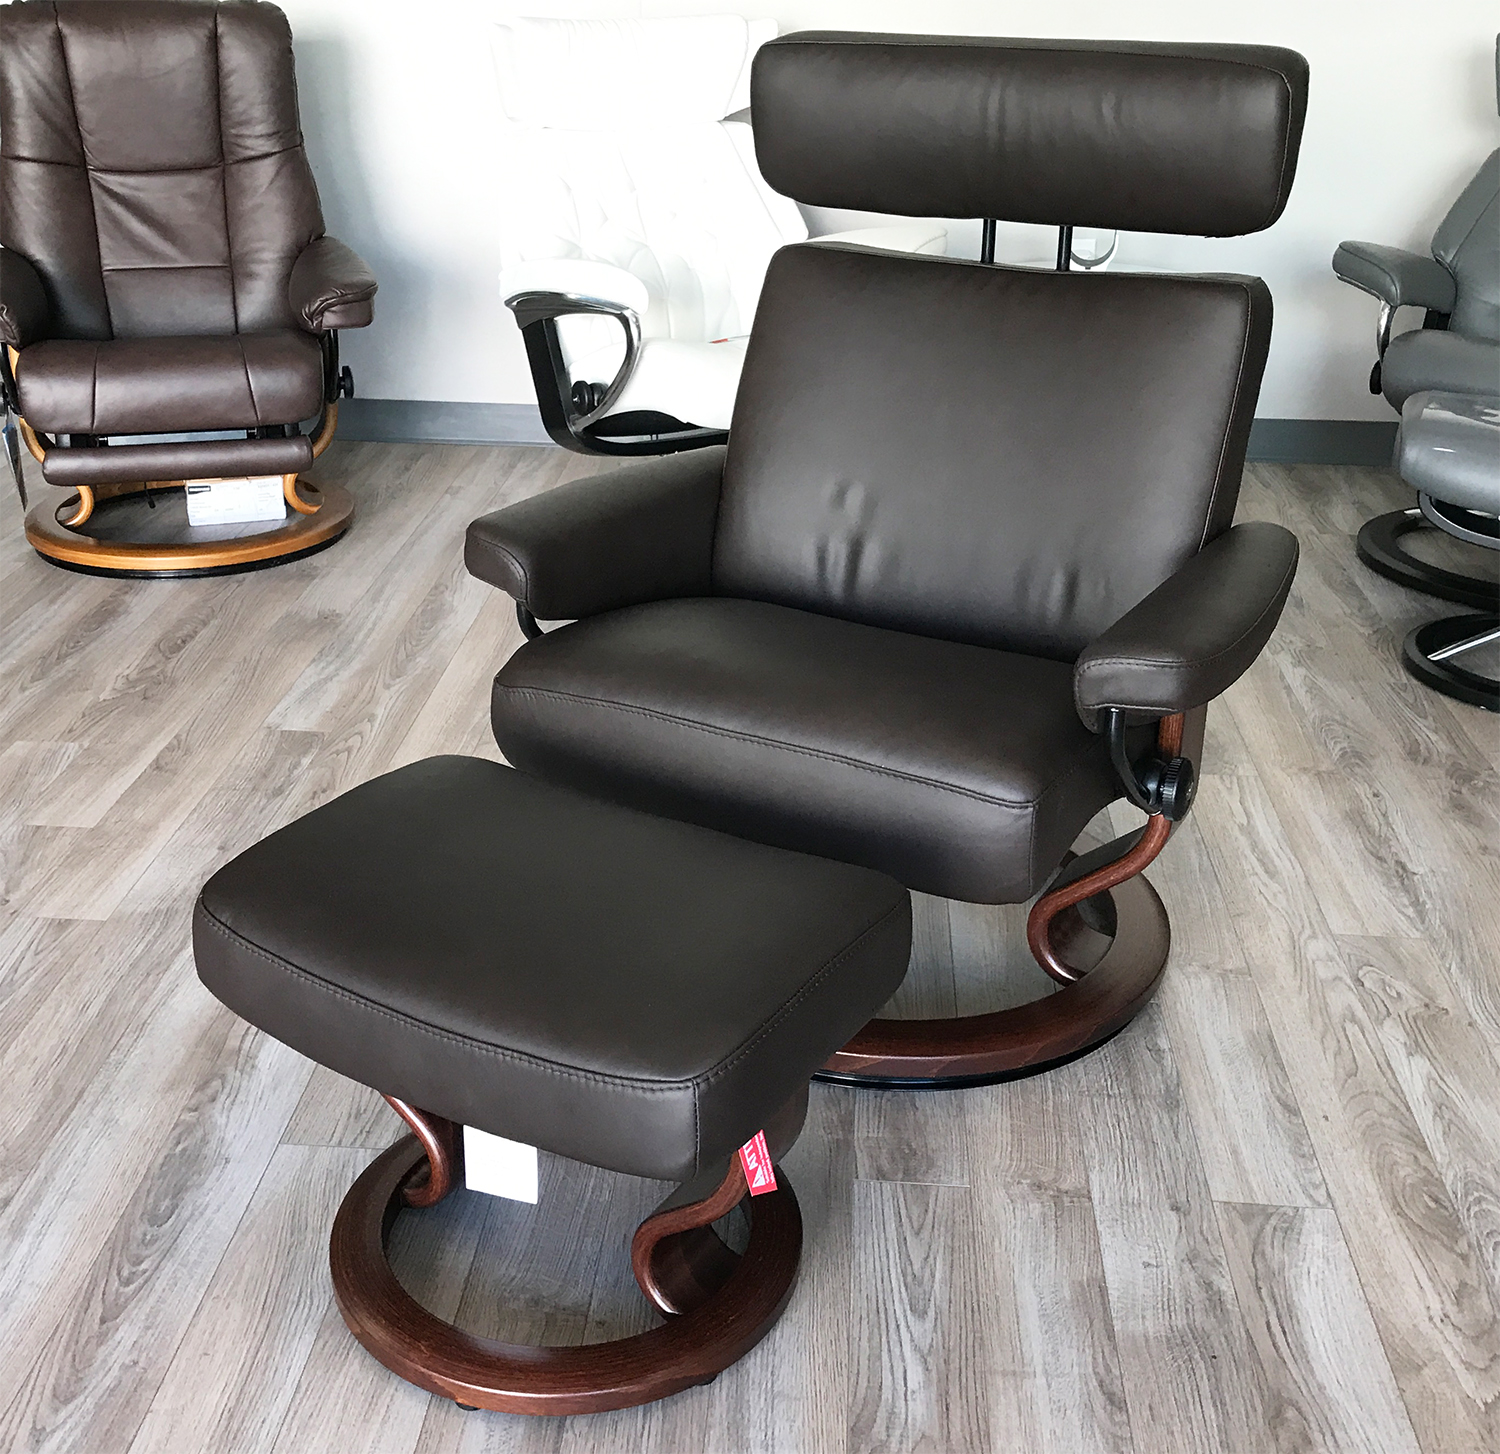 Leather Recliner Chair With Ottoman Stressless Taurus Paloma Mocca Leather Recliner Chair And Ottoman By Ekornes